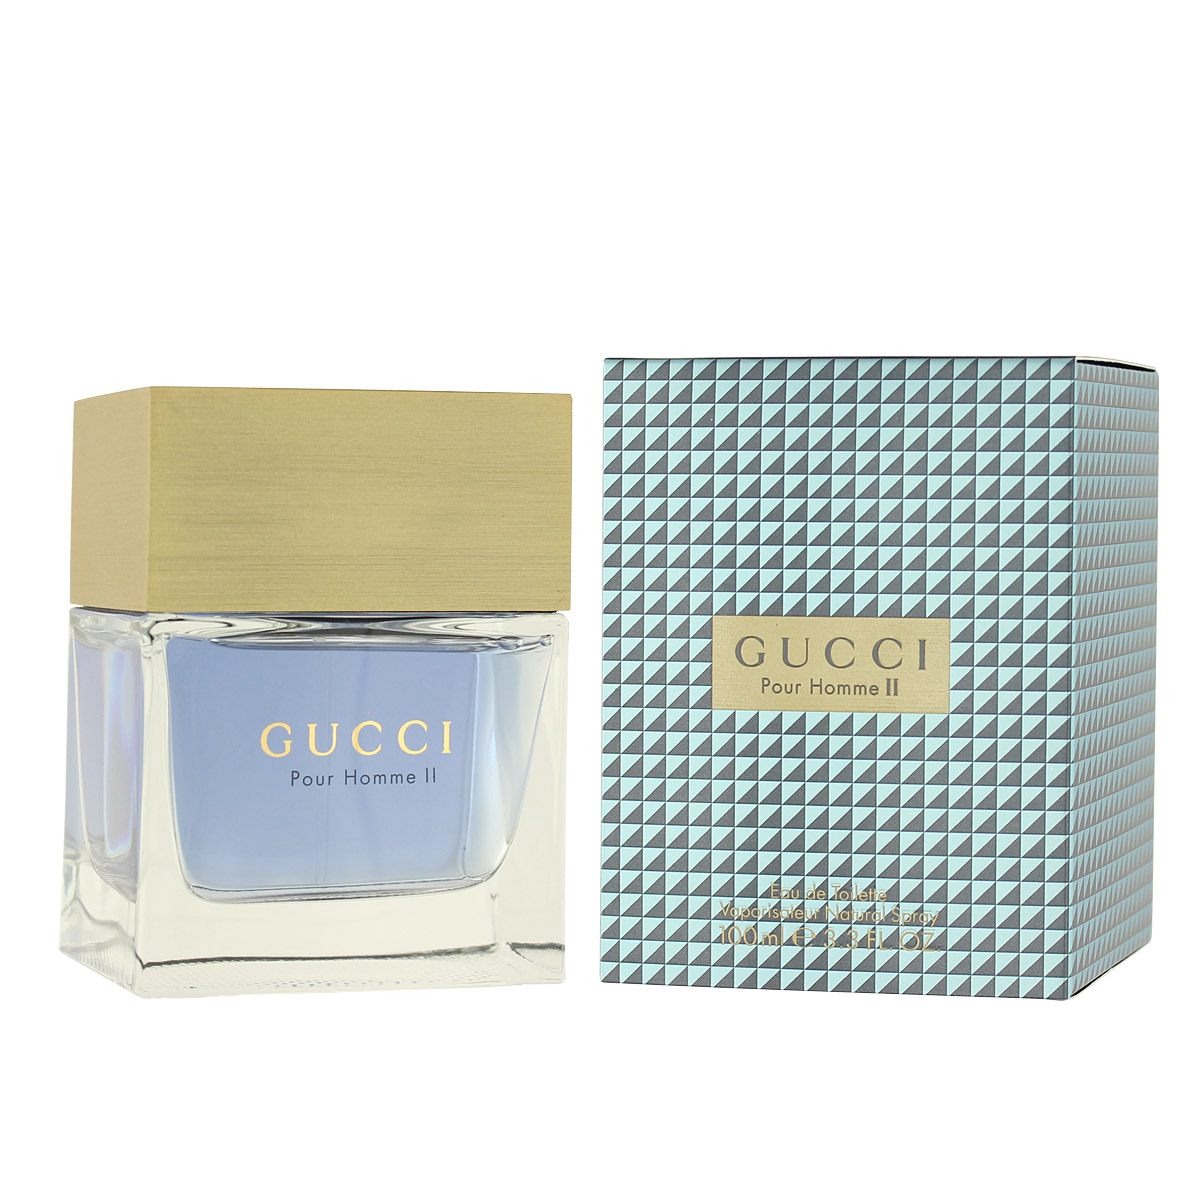 gucci pour homme 2 eau de toilette 100 ml preisvergleich. Black Bedroom Furniture Sets. Home Design Ideas